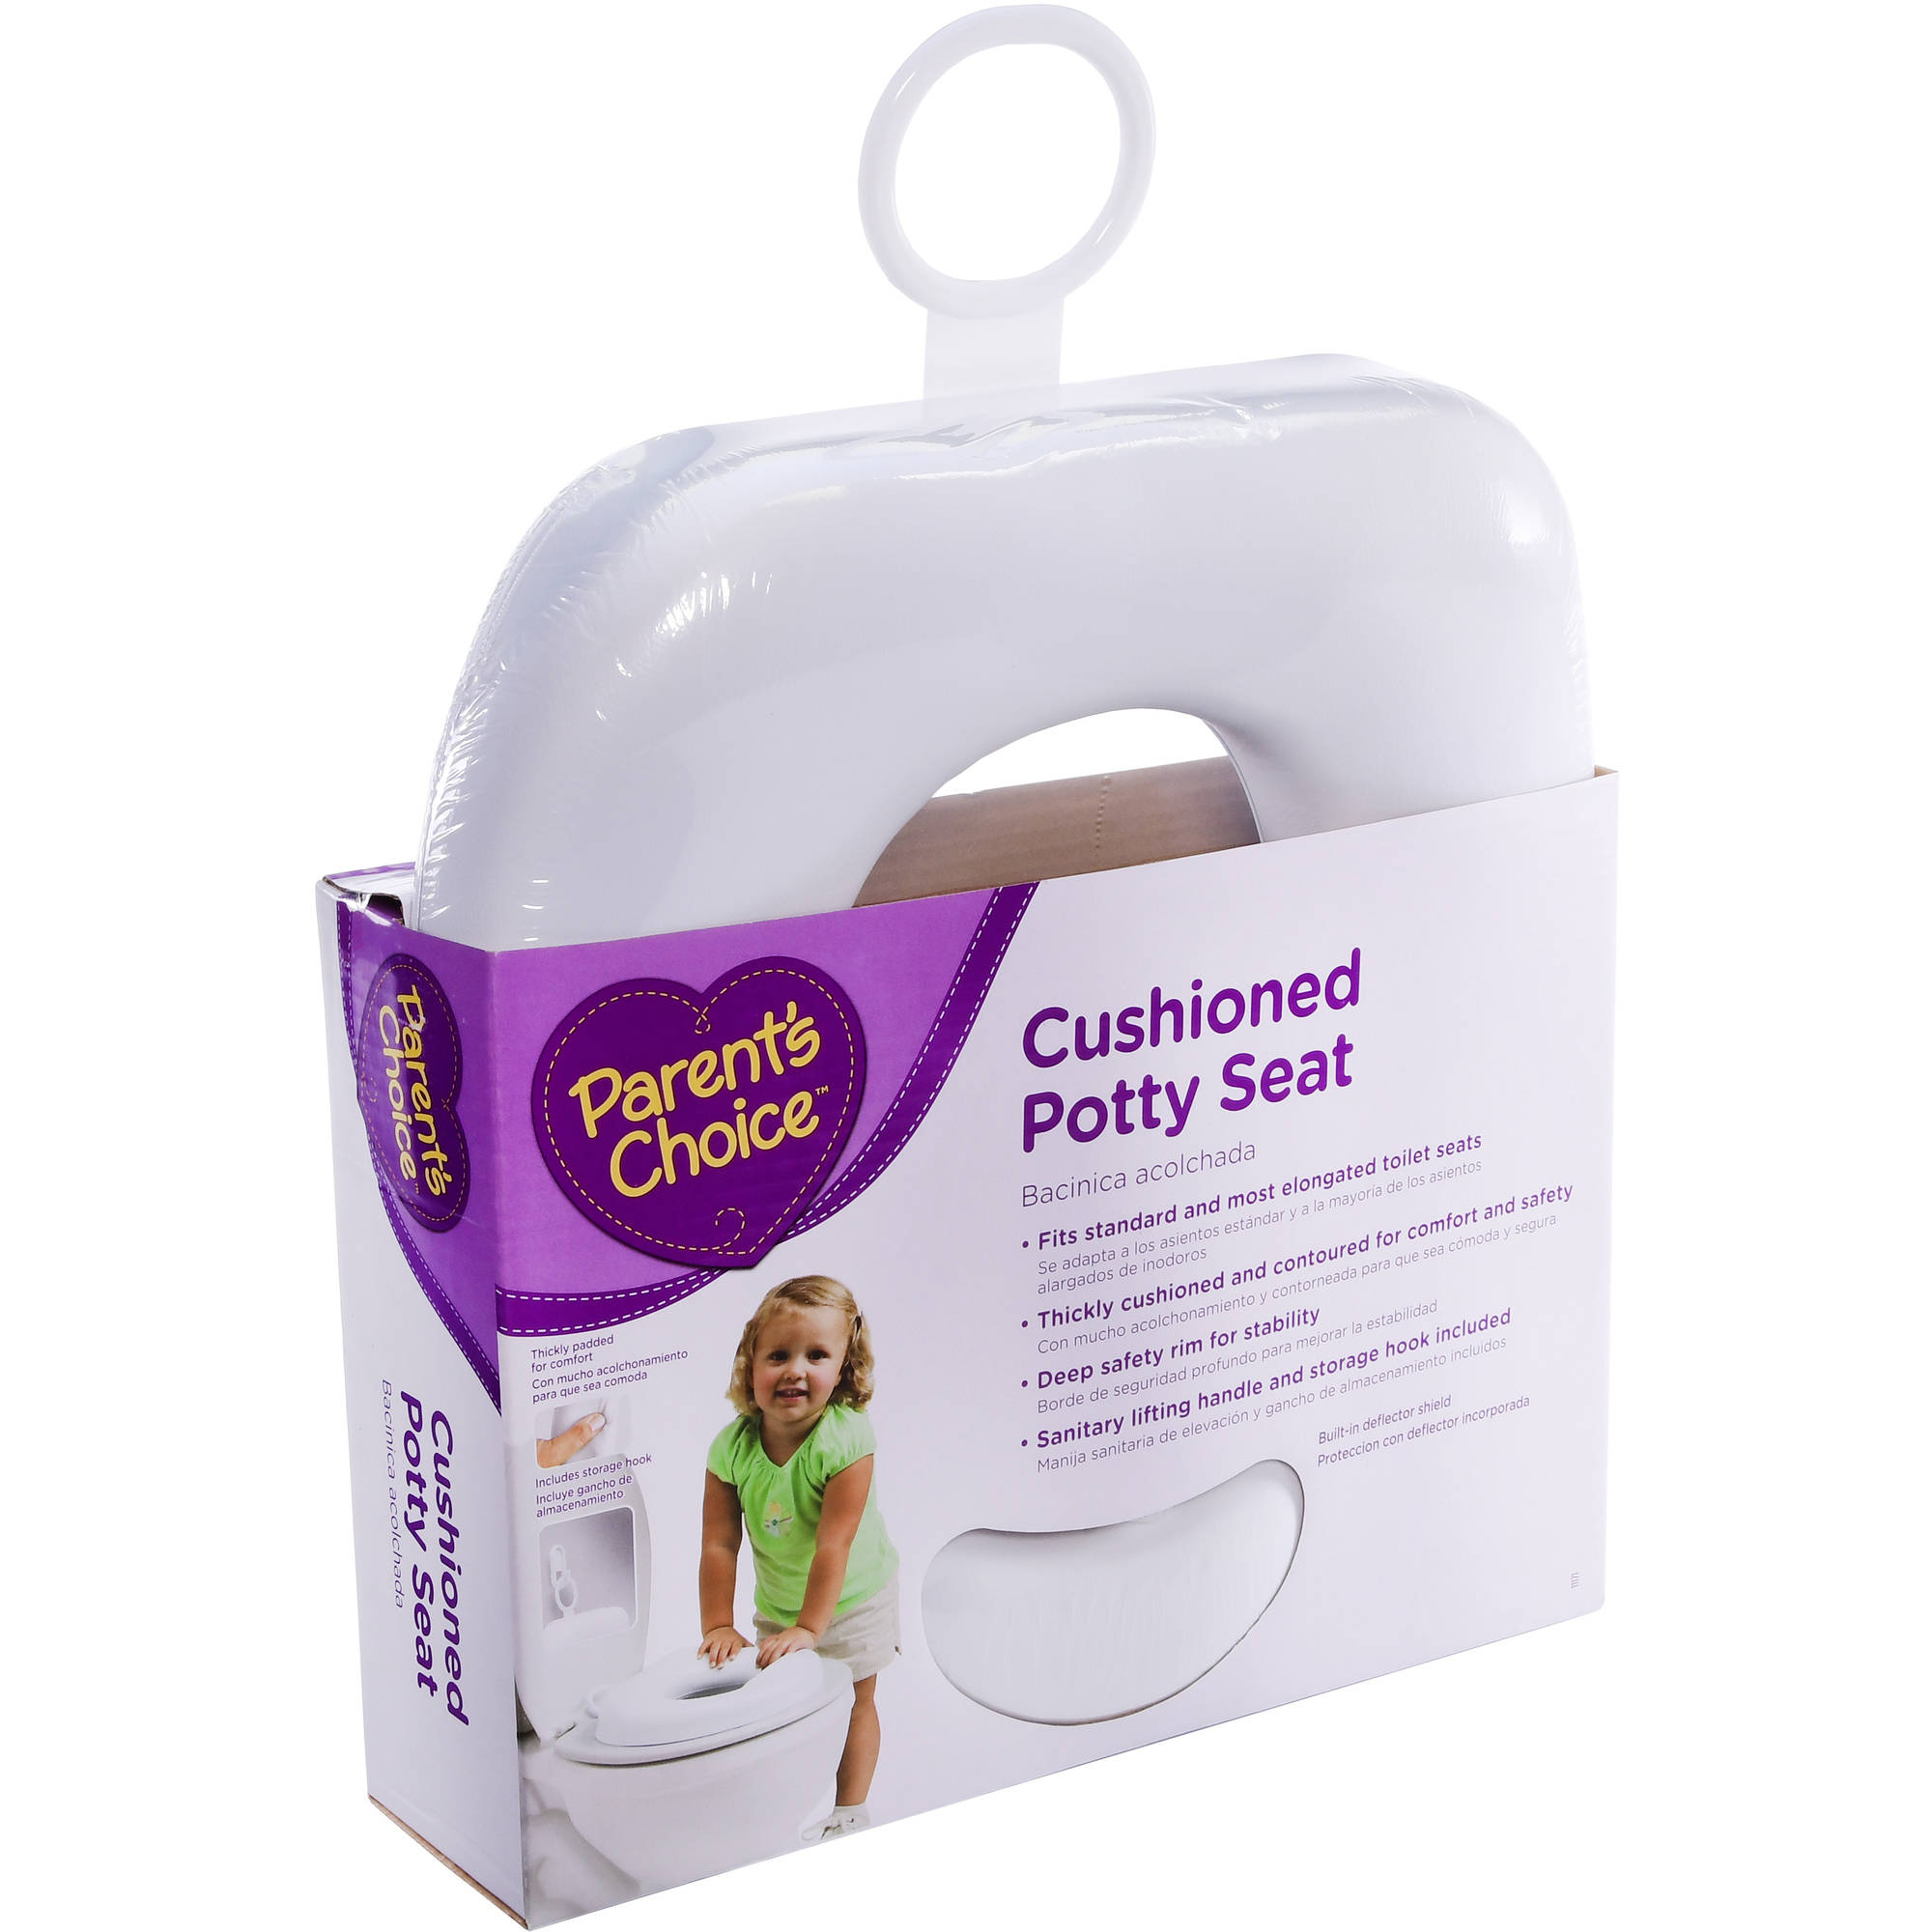 Parents Choice Cushion Potty Seat